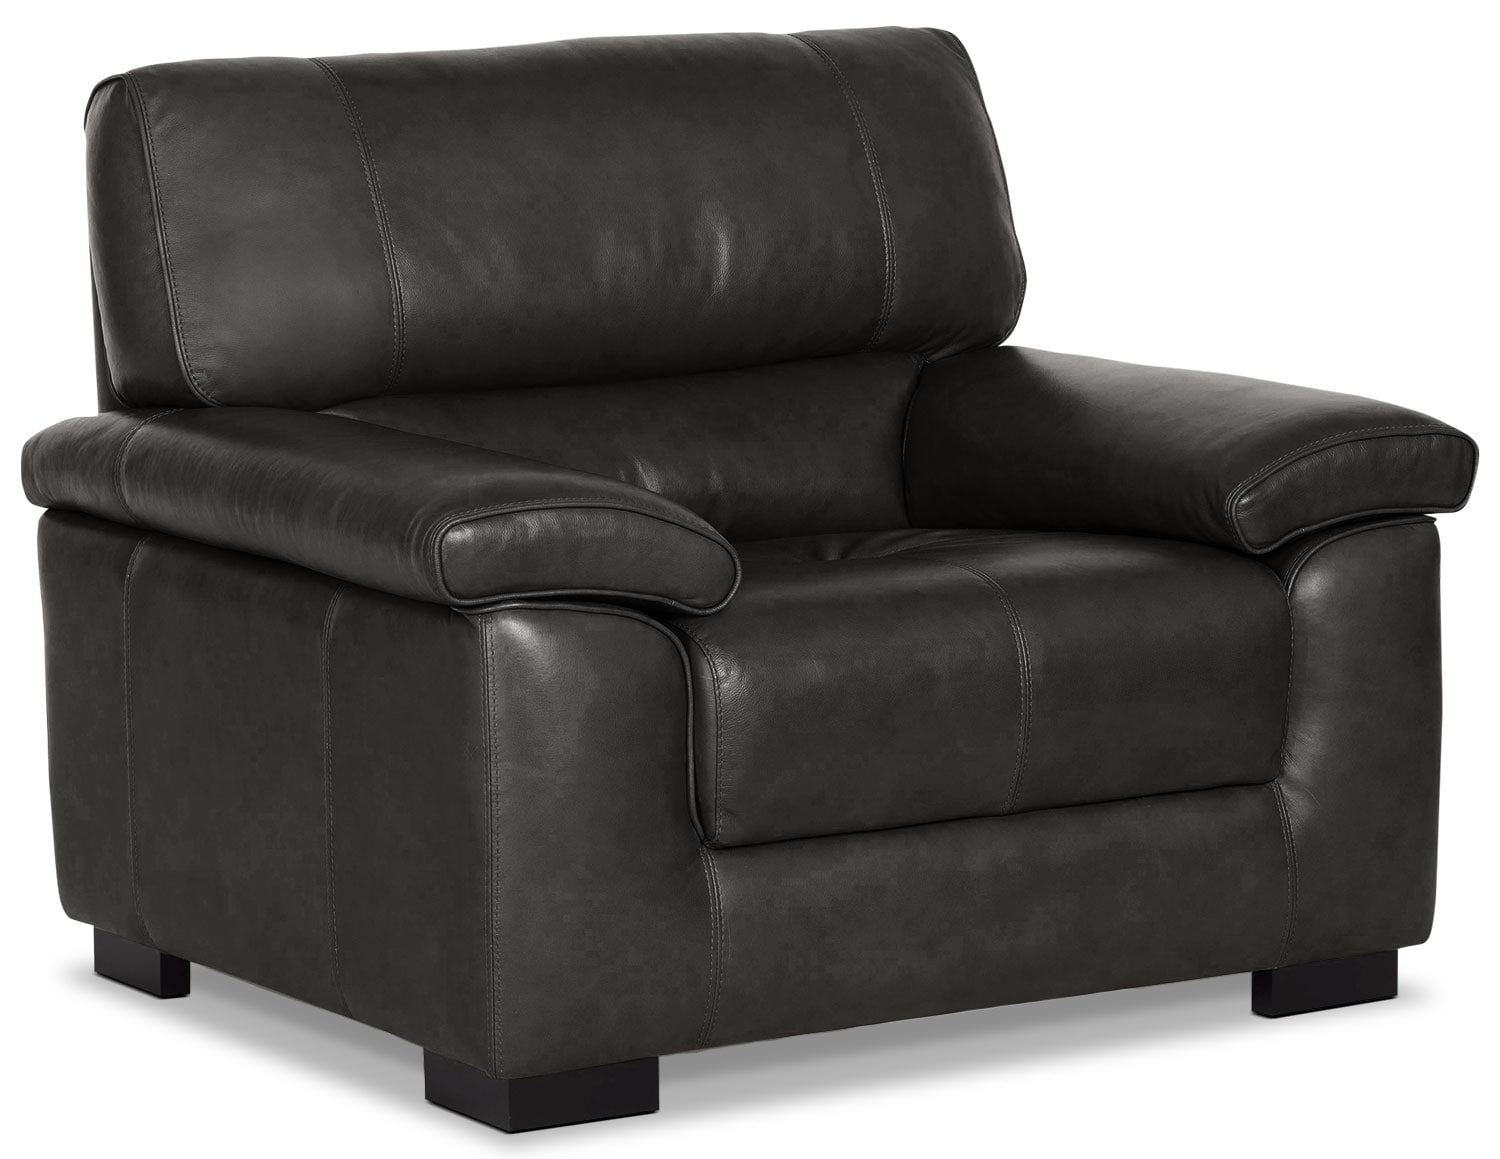 Chateau d'Ax 100% Genuine Leather Chair - Charcoal